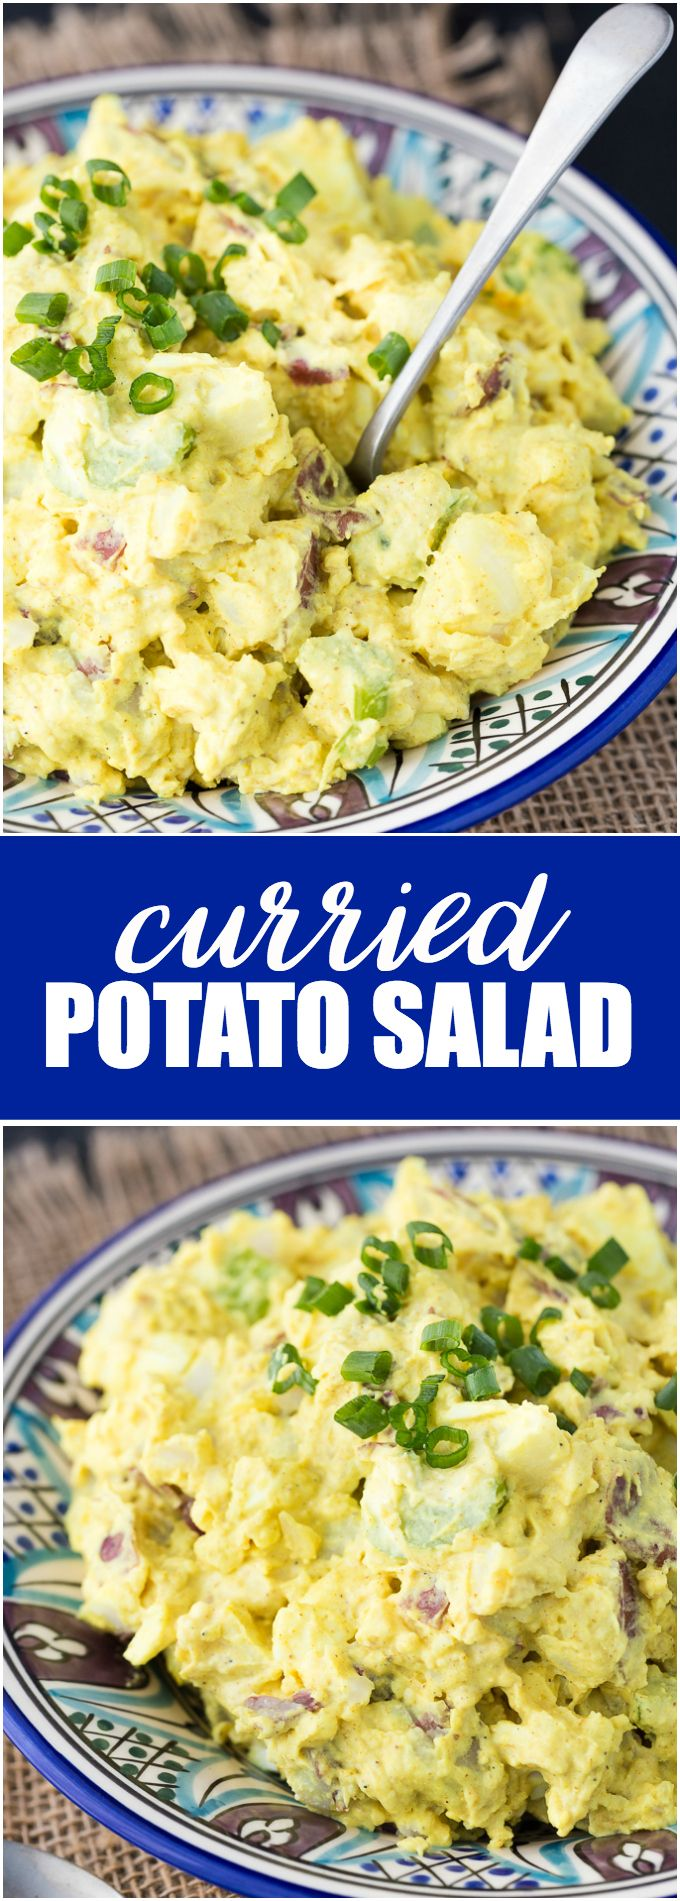 Curried Potato Salad - An easy side perfect for your backyard BBQ!